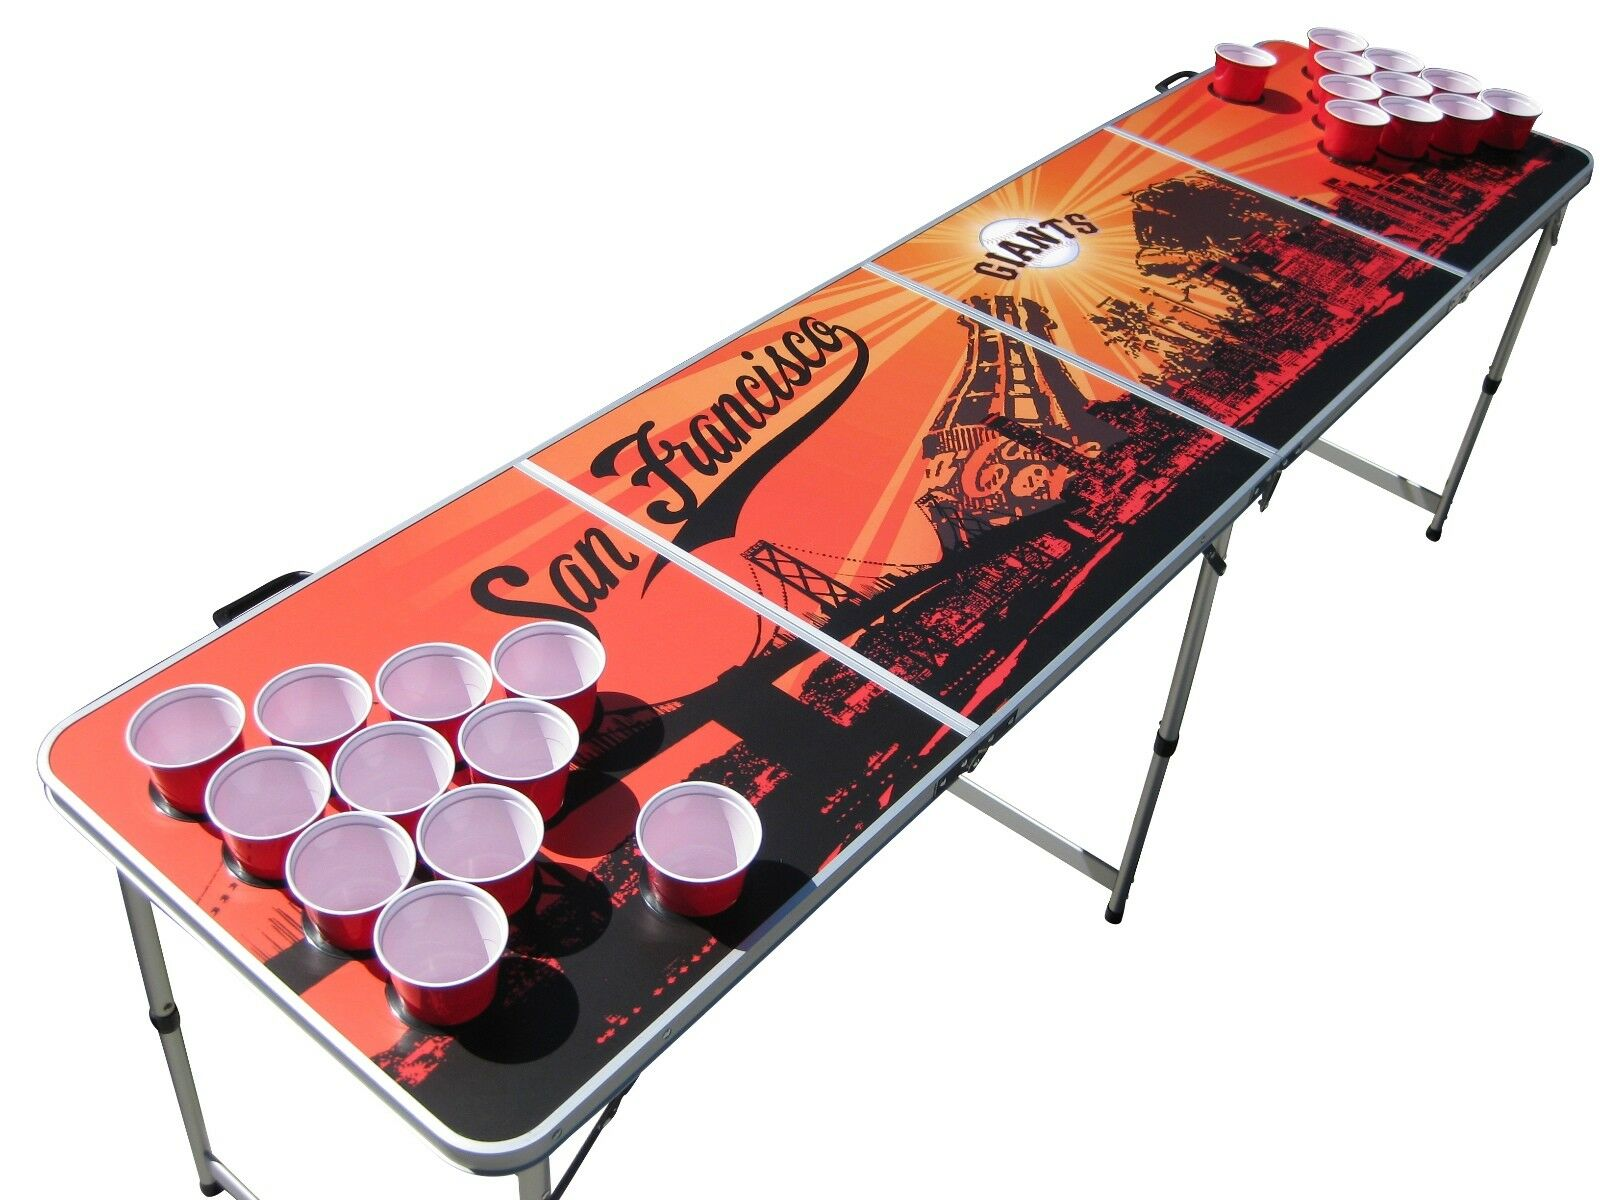 San Francisco Giants Beer  Pong Table with holes.  in stock